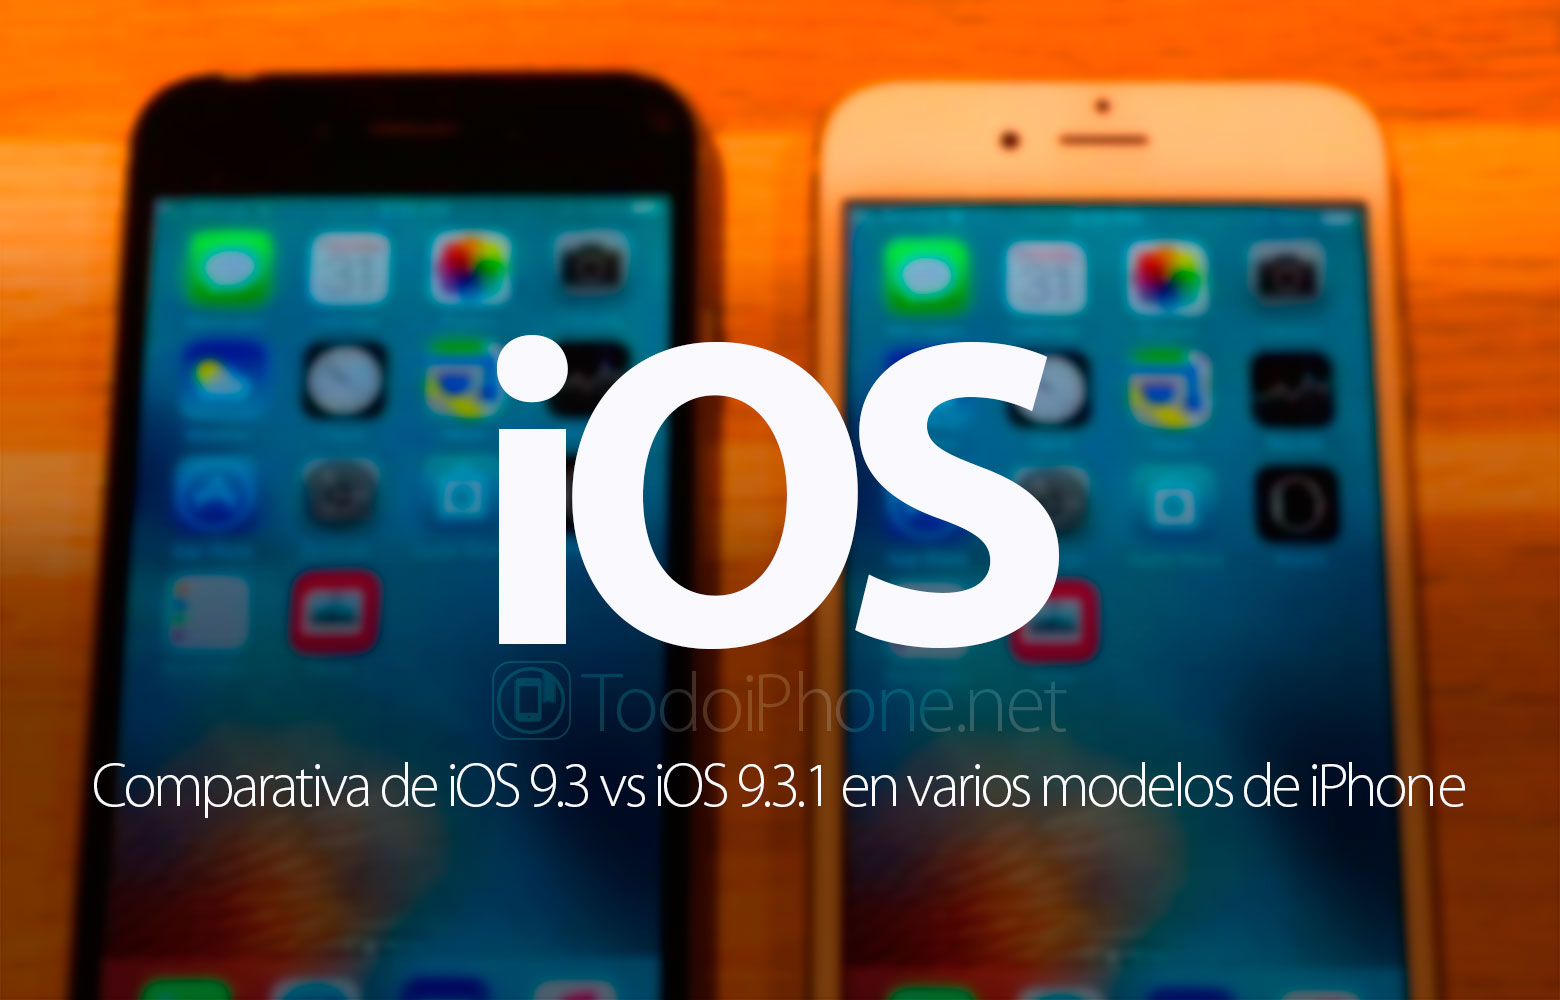 comparativa-ios-9-3-vs-ios-9-3-1-iphone